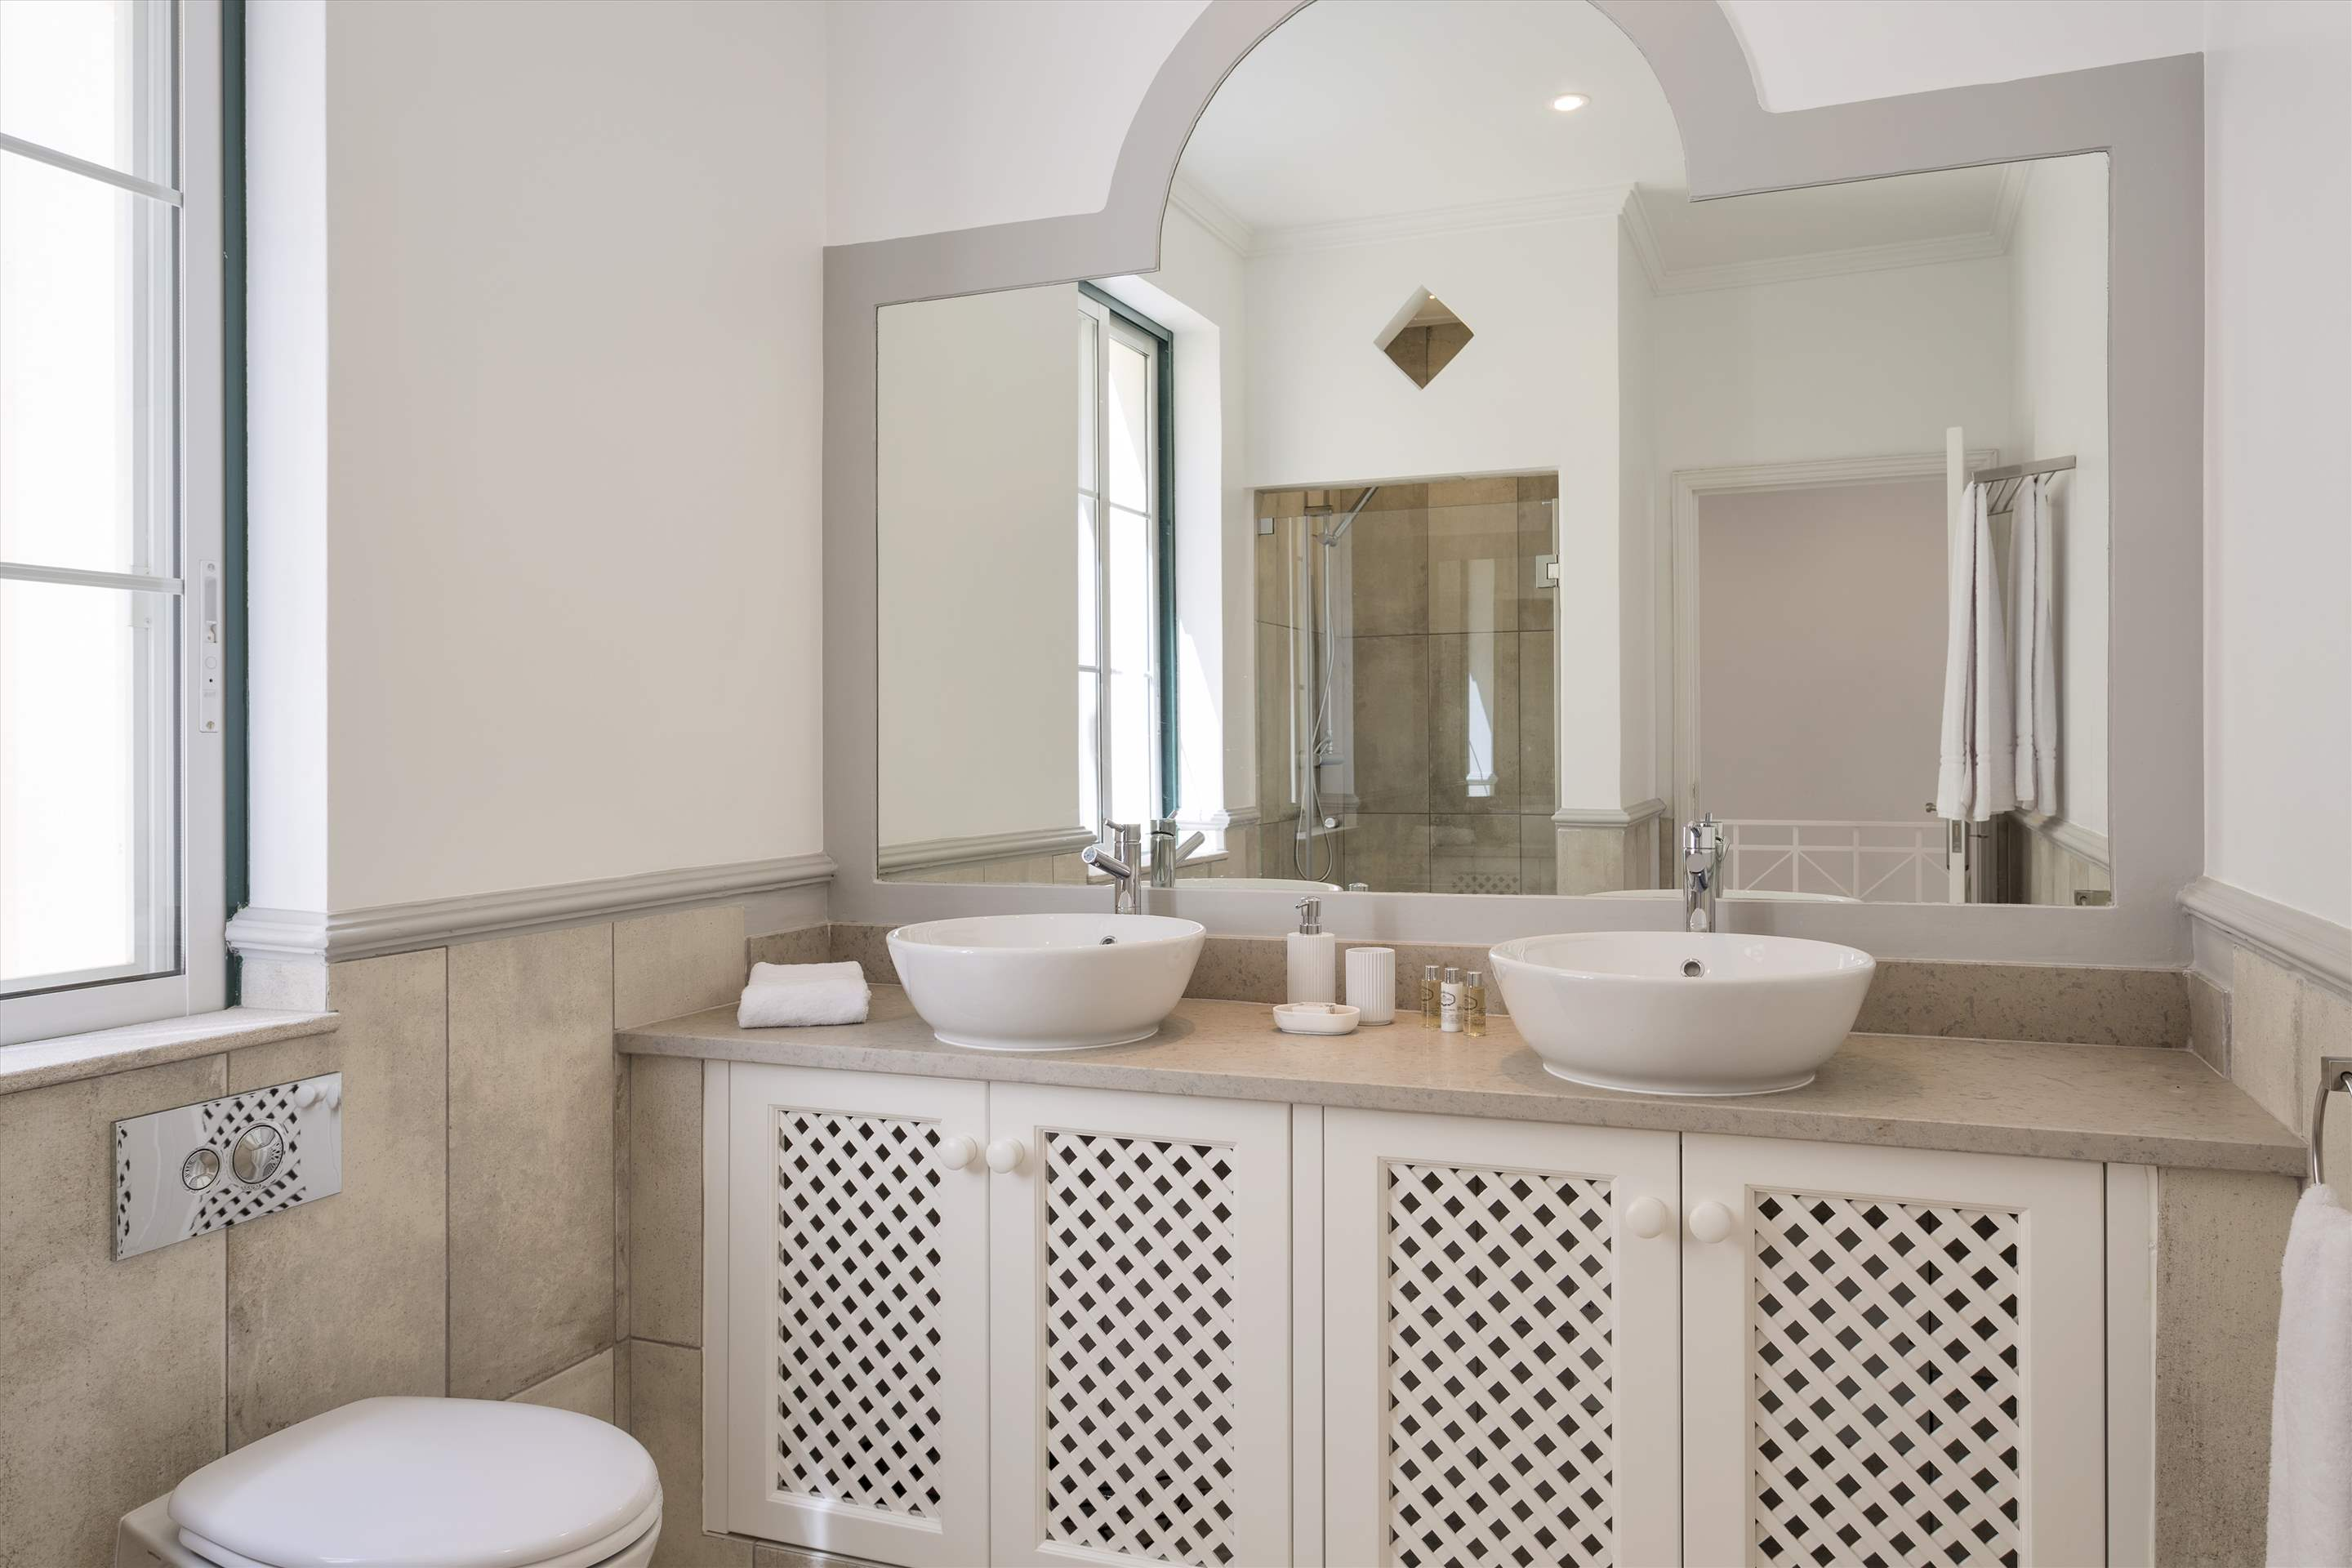 Townhouse Jessica, 3 bedroom villa in Quinta do Lago, Algarve Photo #15